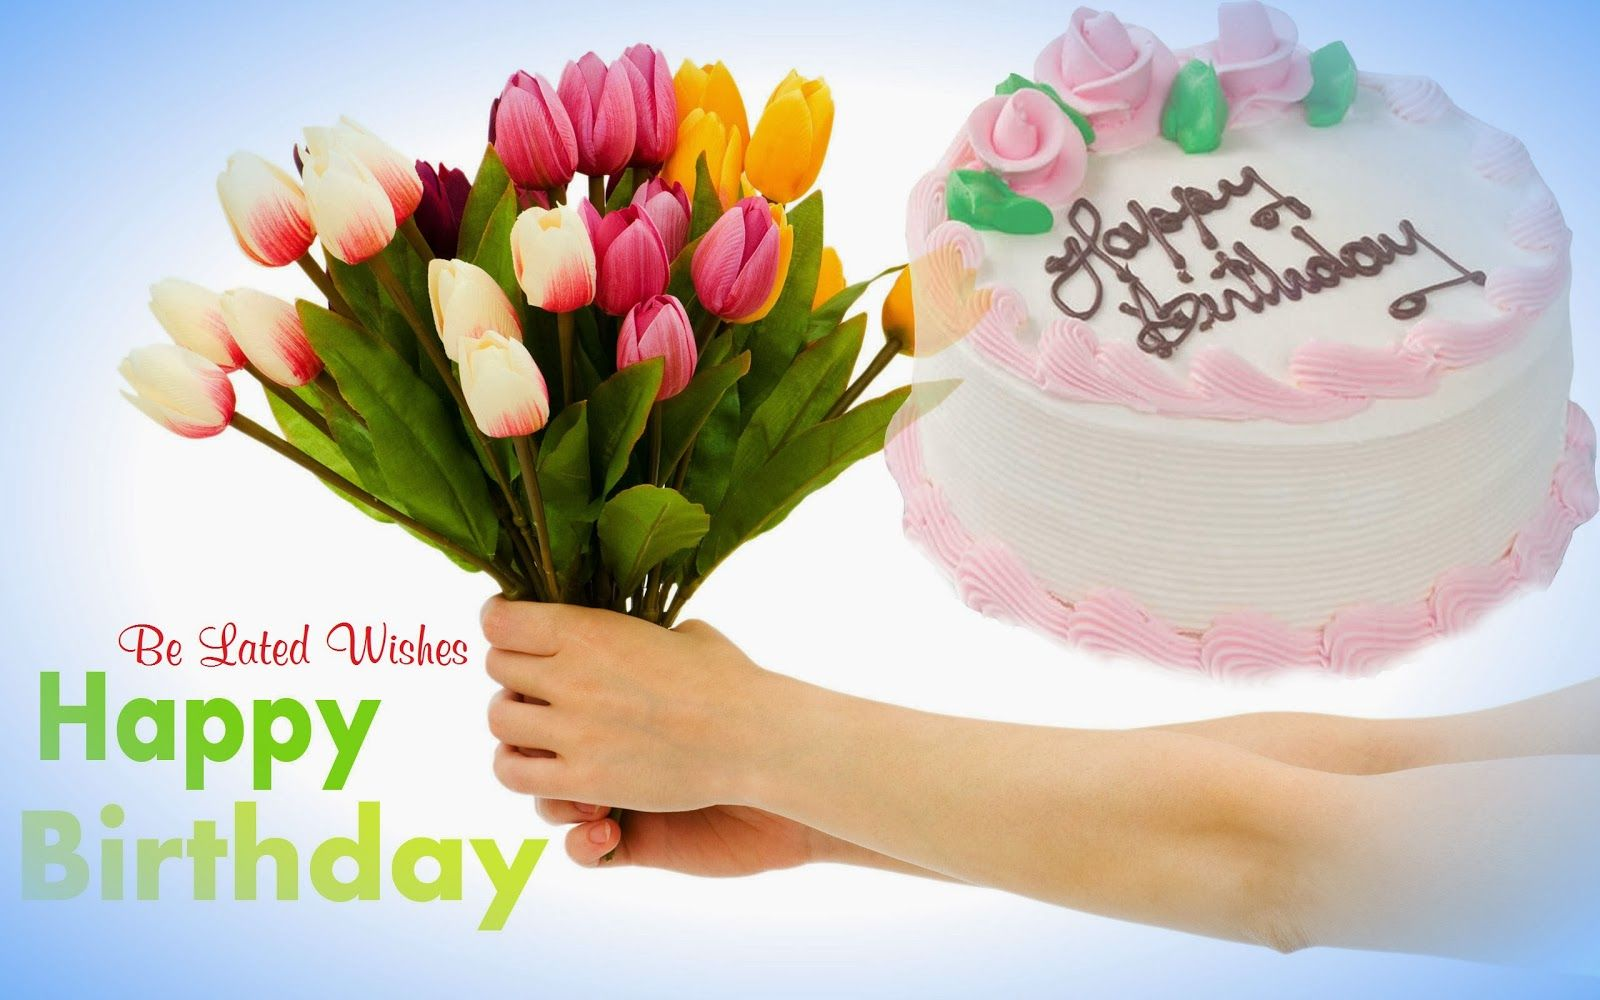 Pin By Darshan Kumar On Wishes Pinterest Birthday Wishes Happy